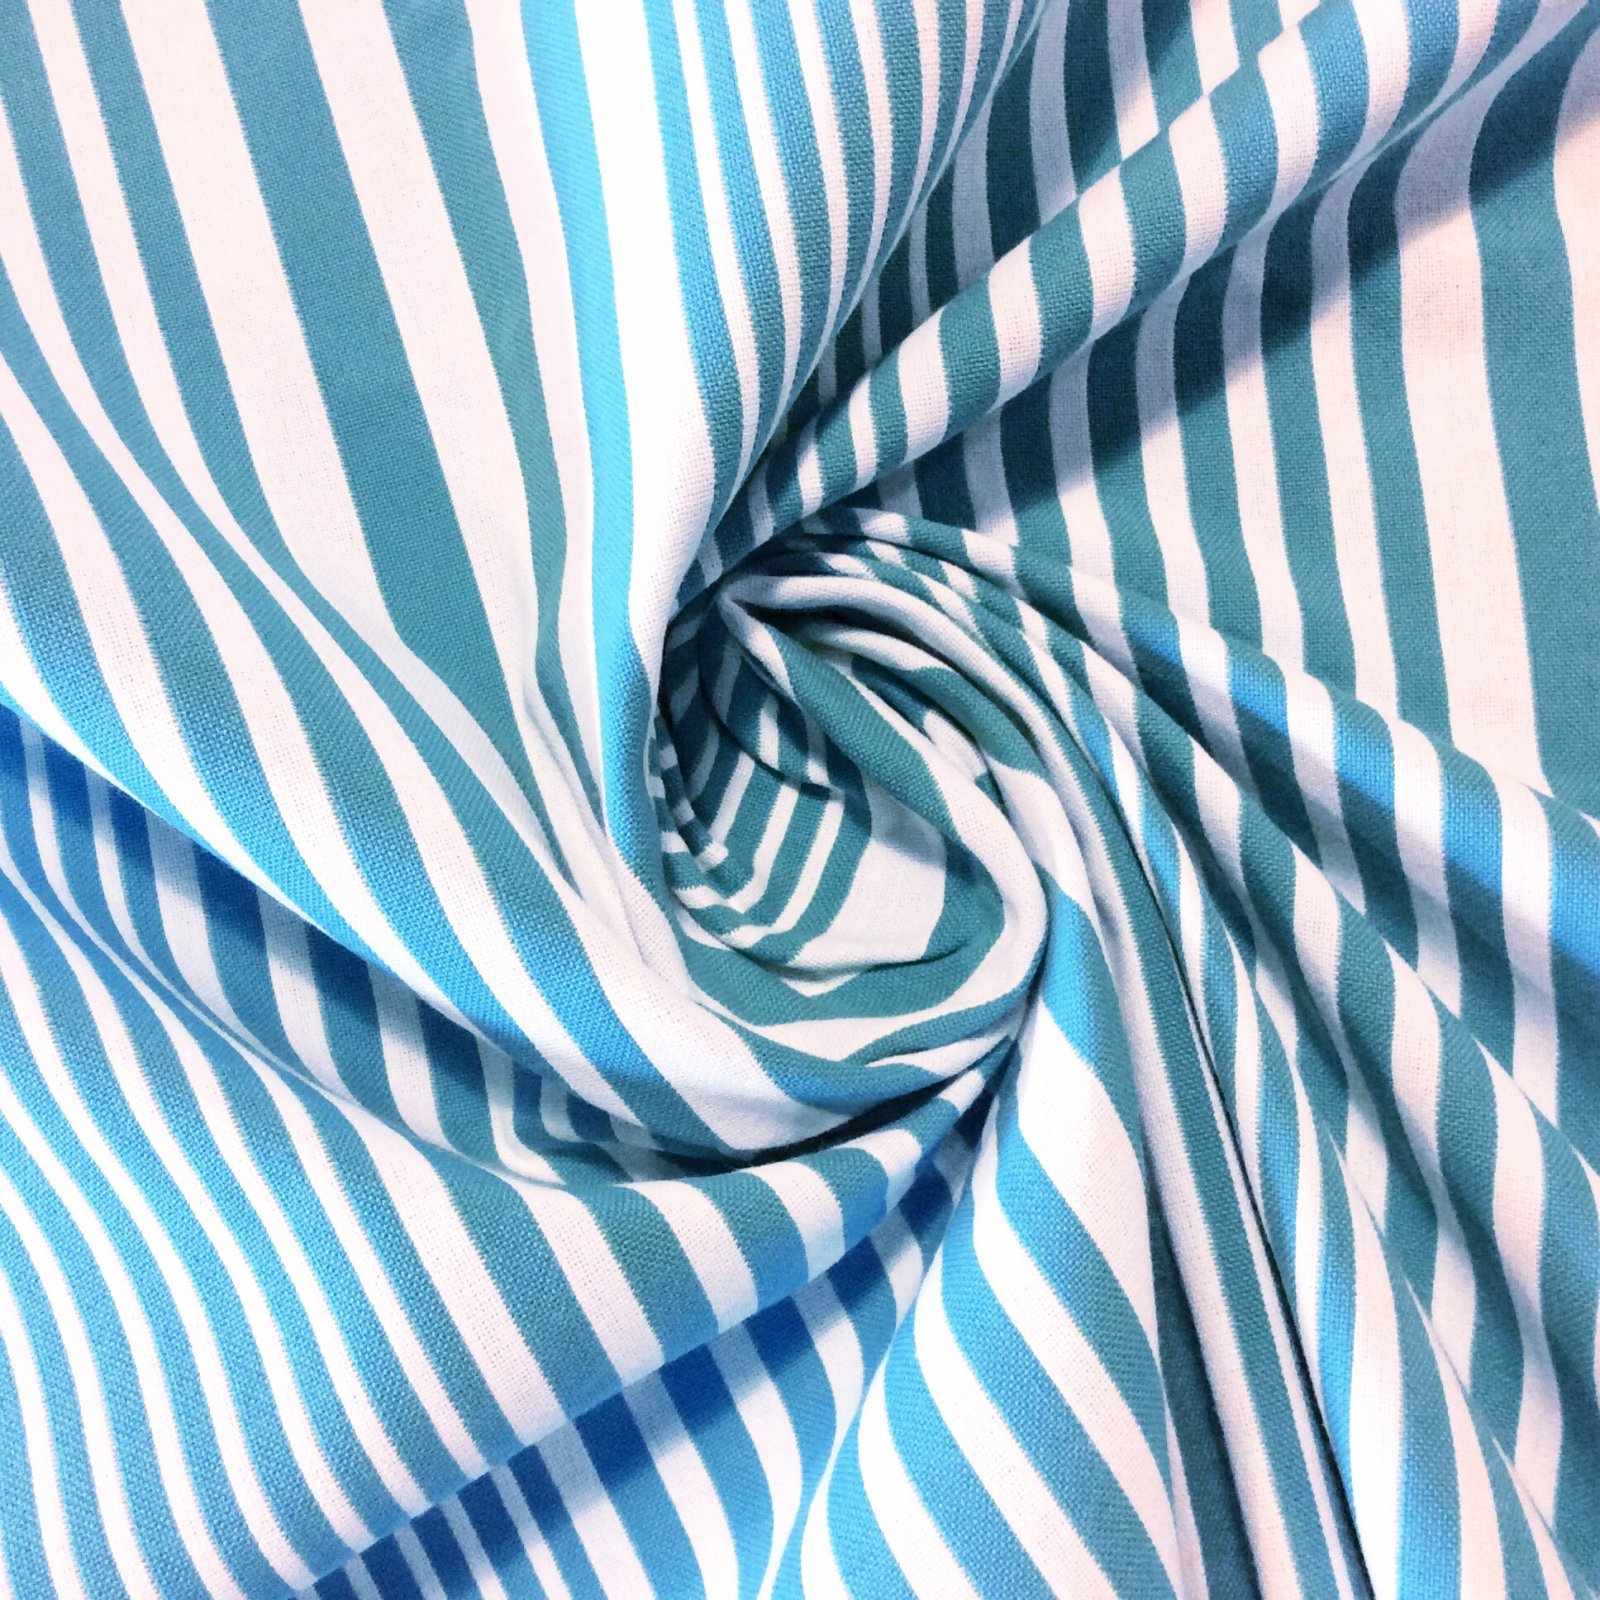 Blue & White Stripe Reversible Acrylic Cool Indoor Outdoor Fabric 629